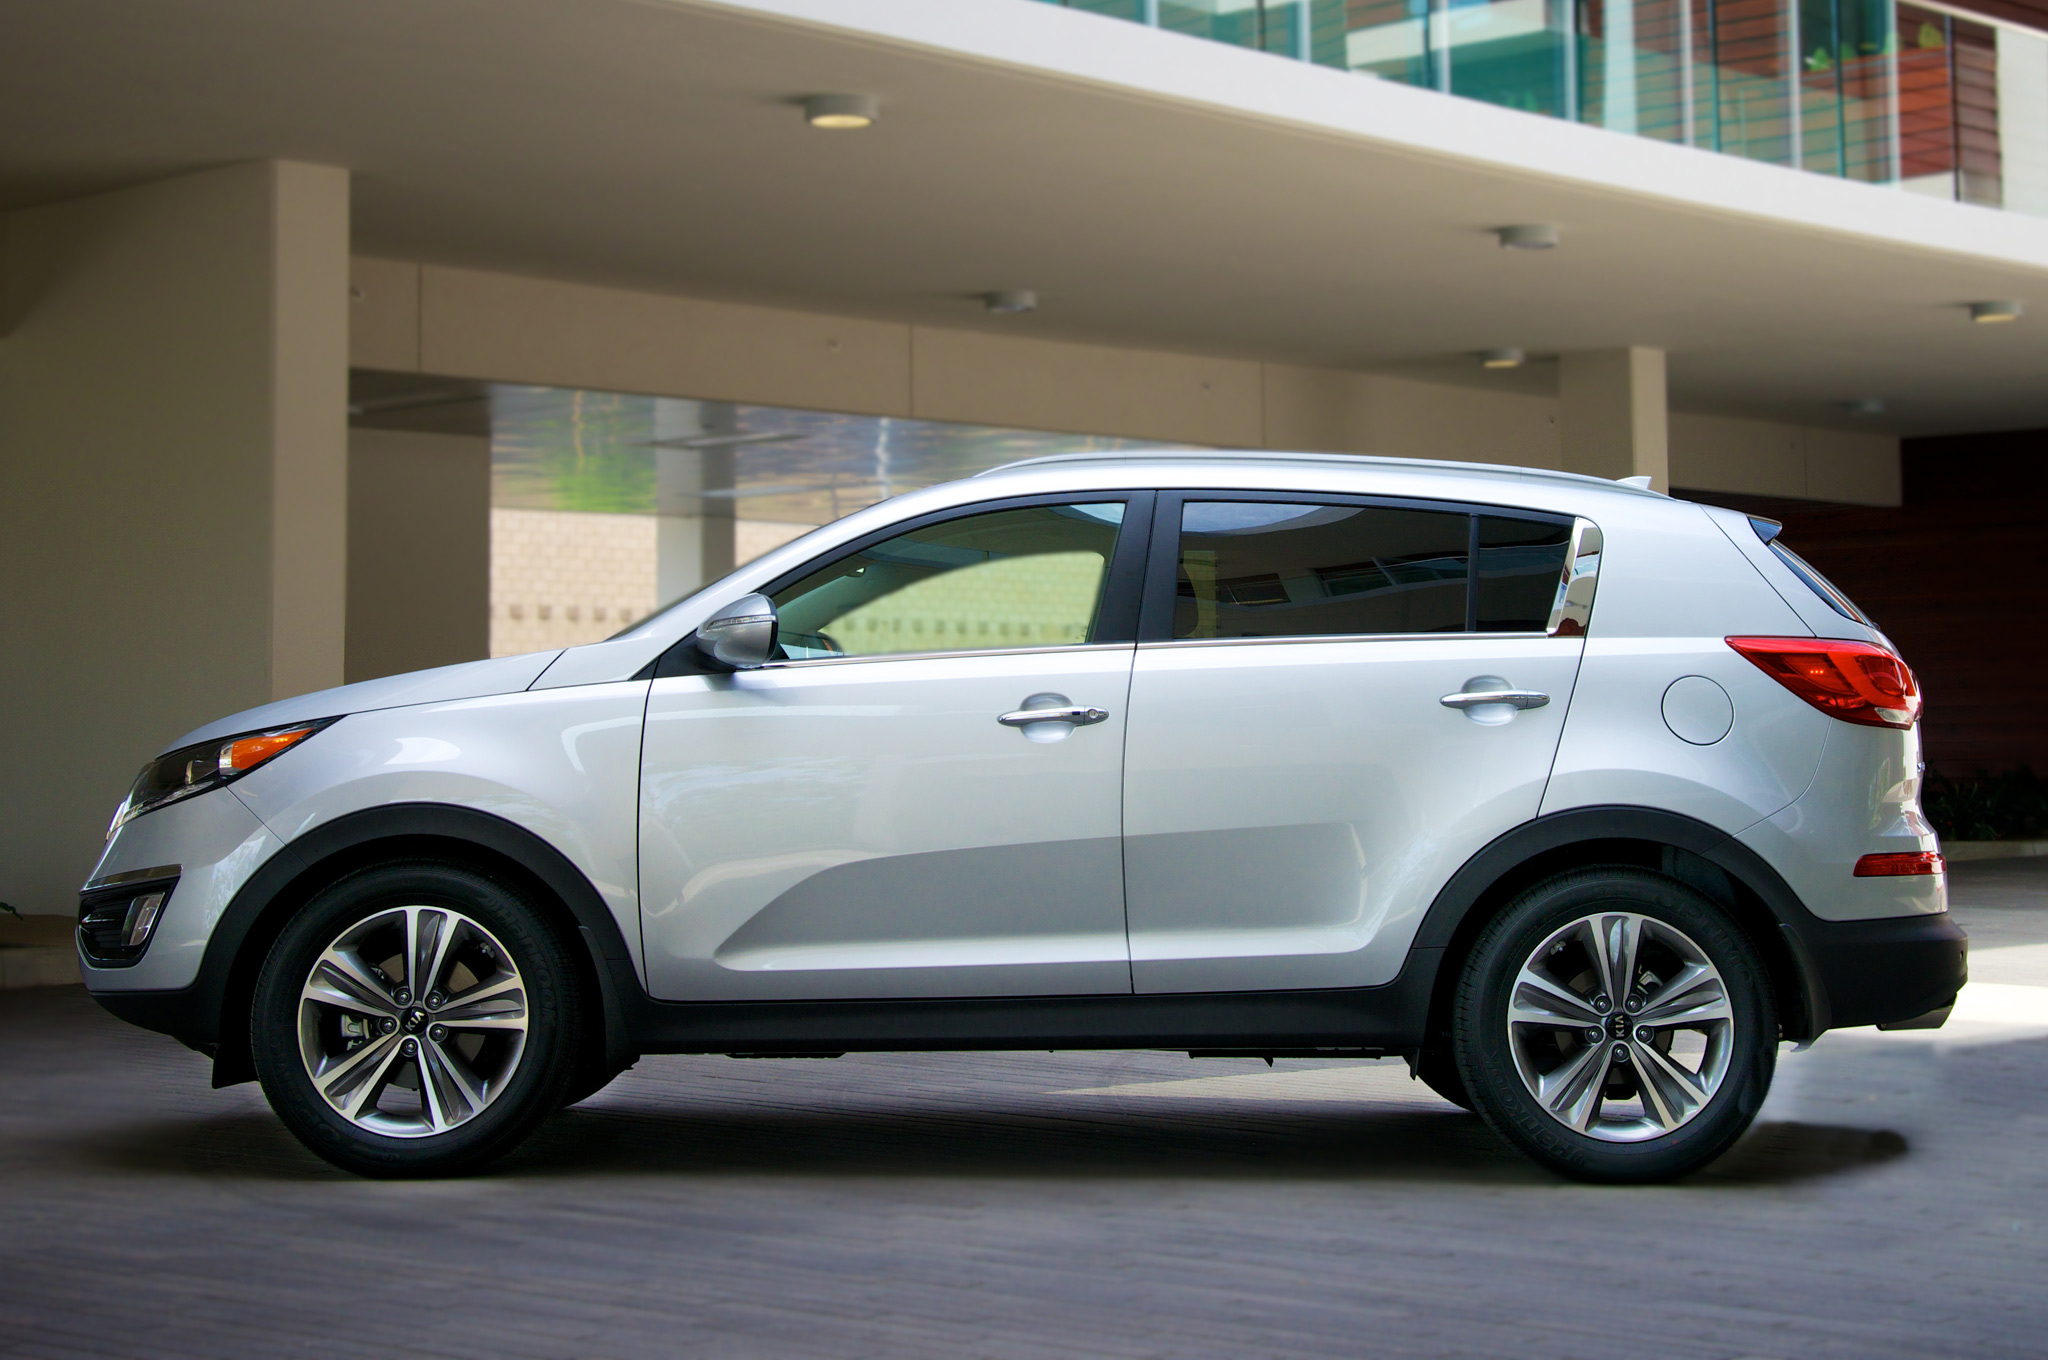 2018 Kia Sportage SX photo - 3